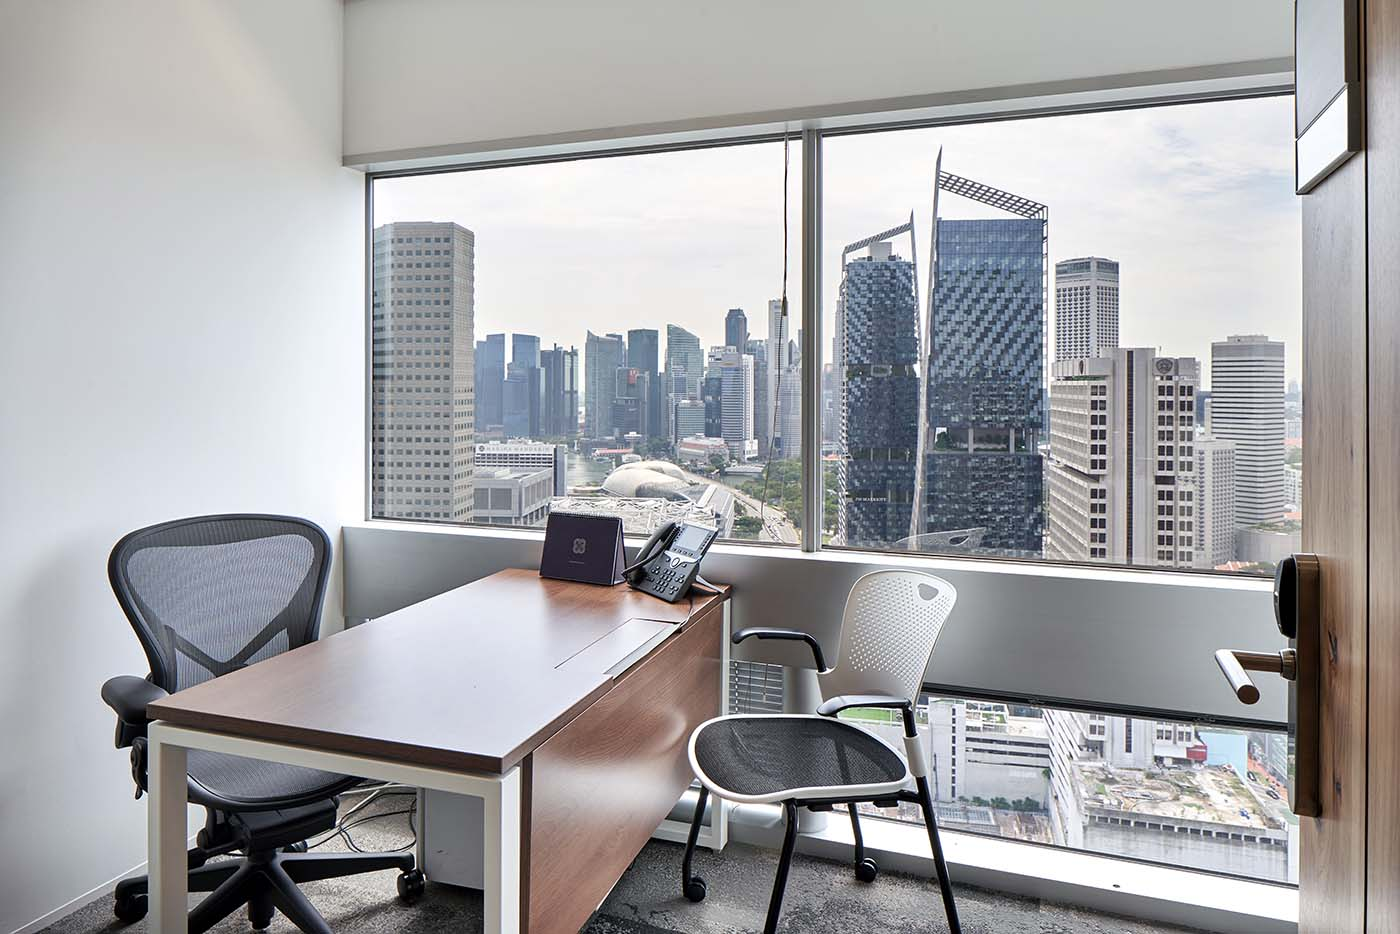 Other Workspace Solutions in Singapore